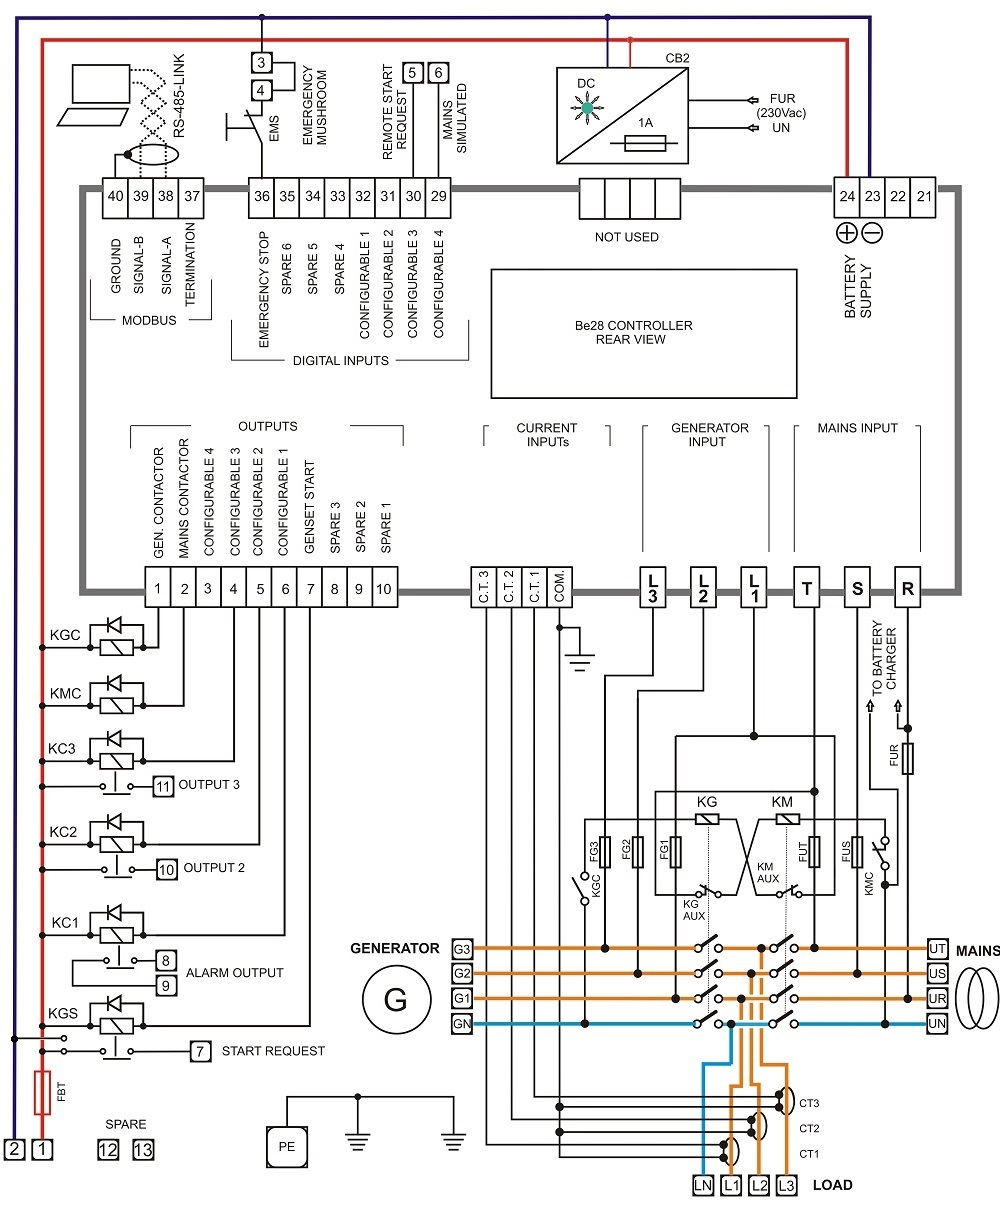 60kVA ATS PANEL WIRING DIAGRAM?resize\=665%2C805 citroen start wiring diagram wiring diagram shrutiradio citroen relay wiring diagram at honlapkeszites.co